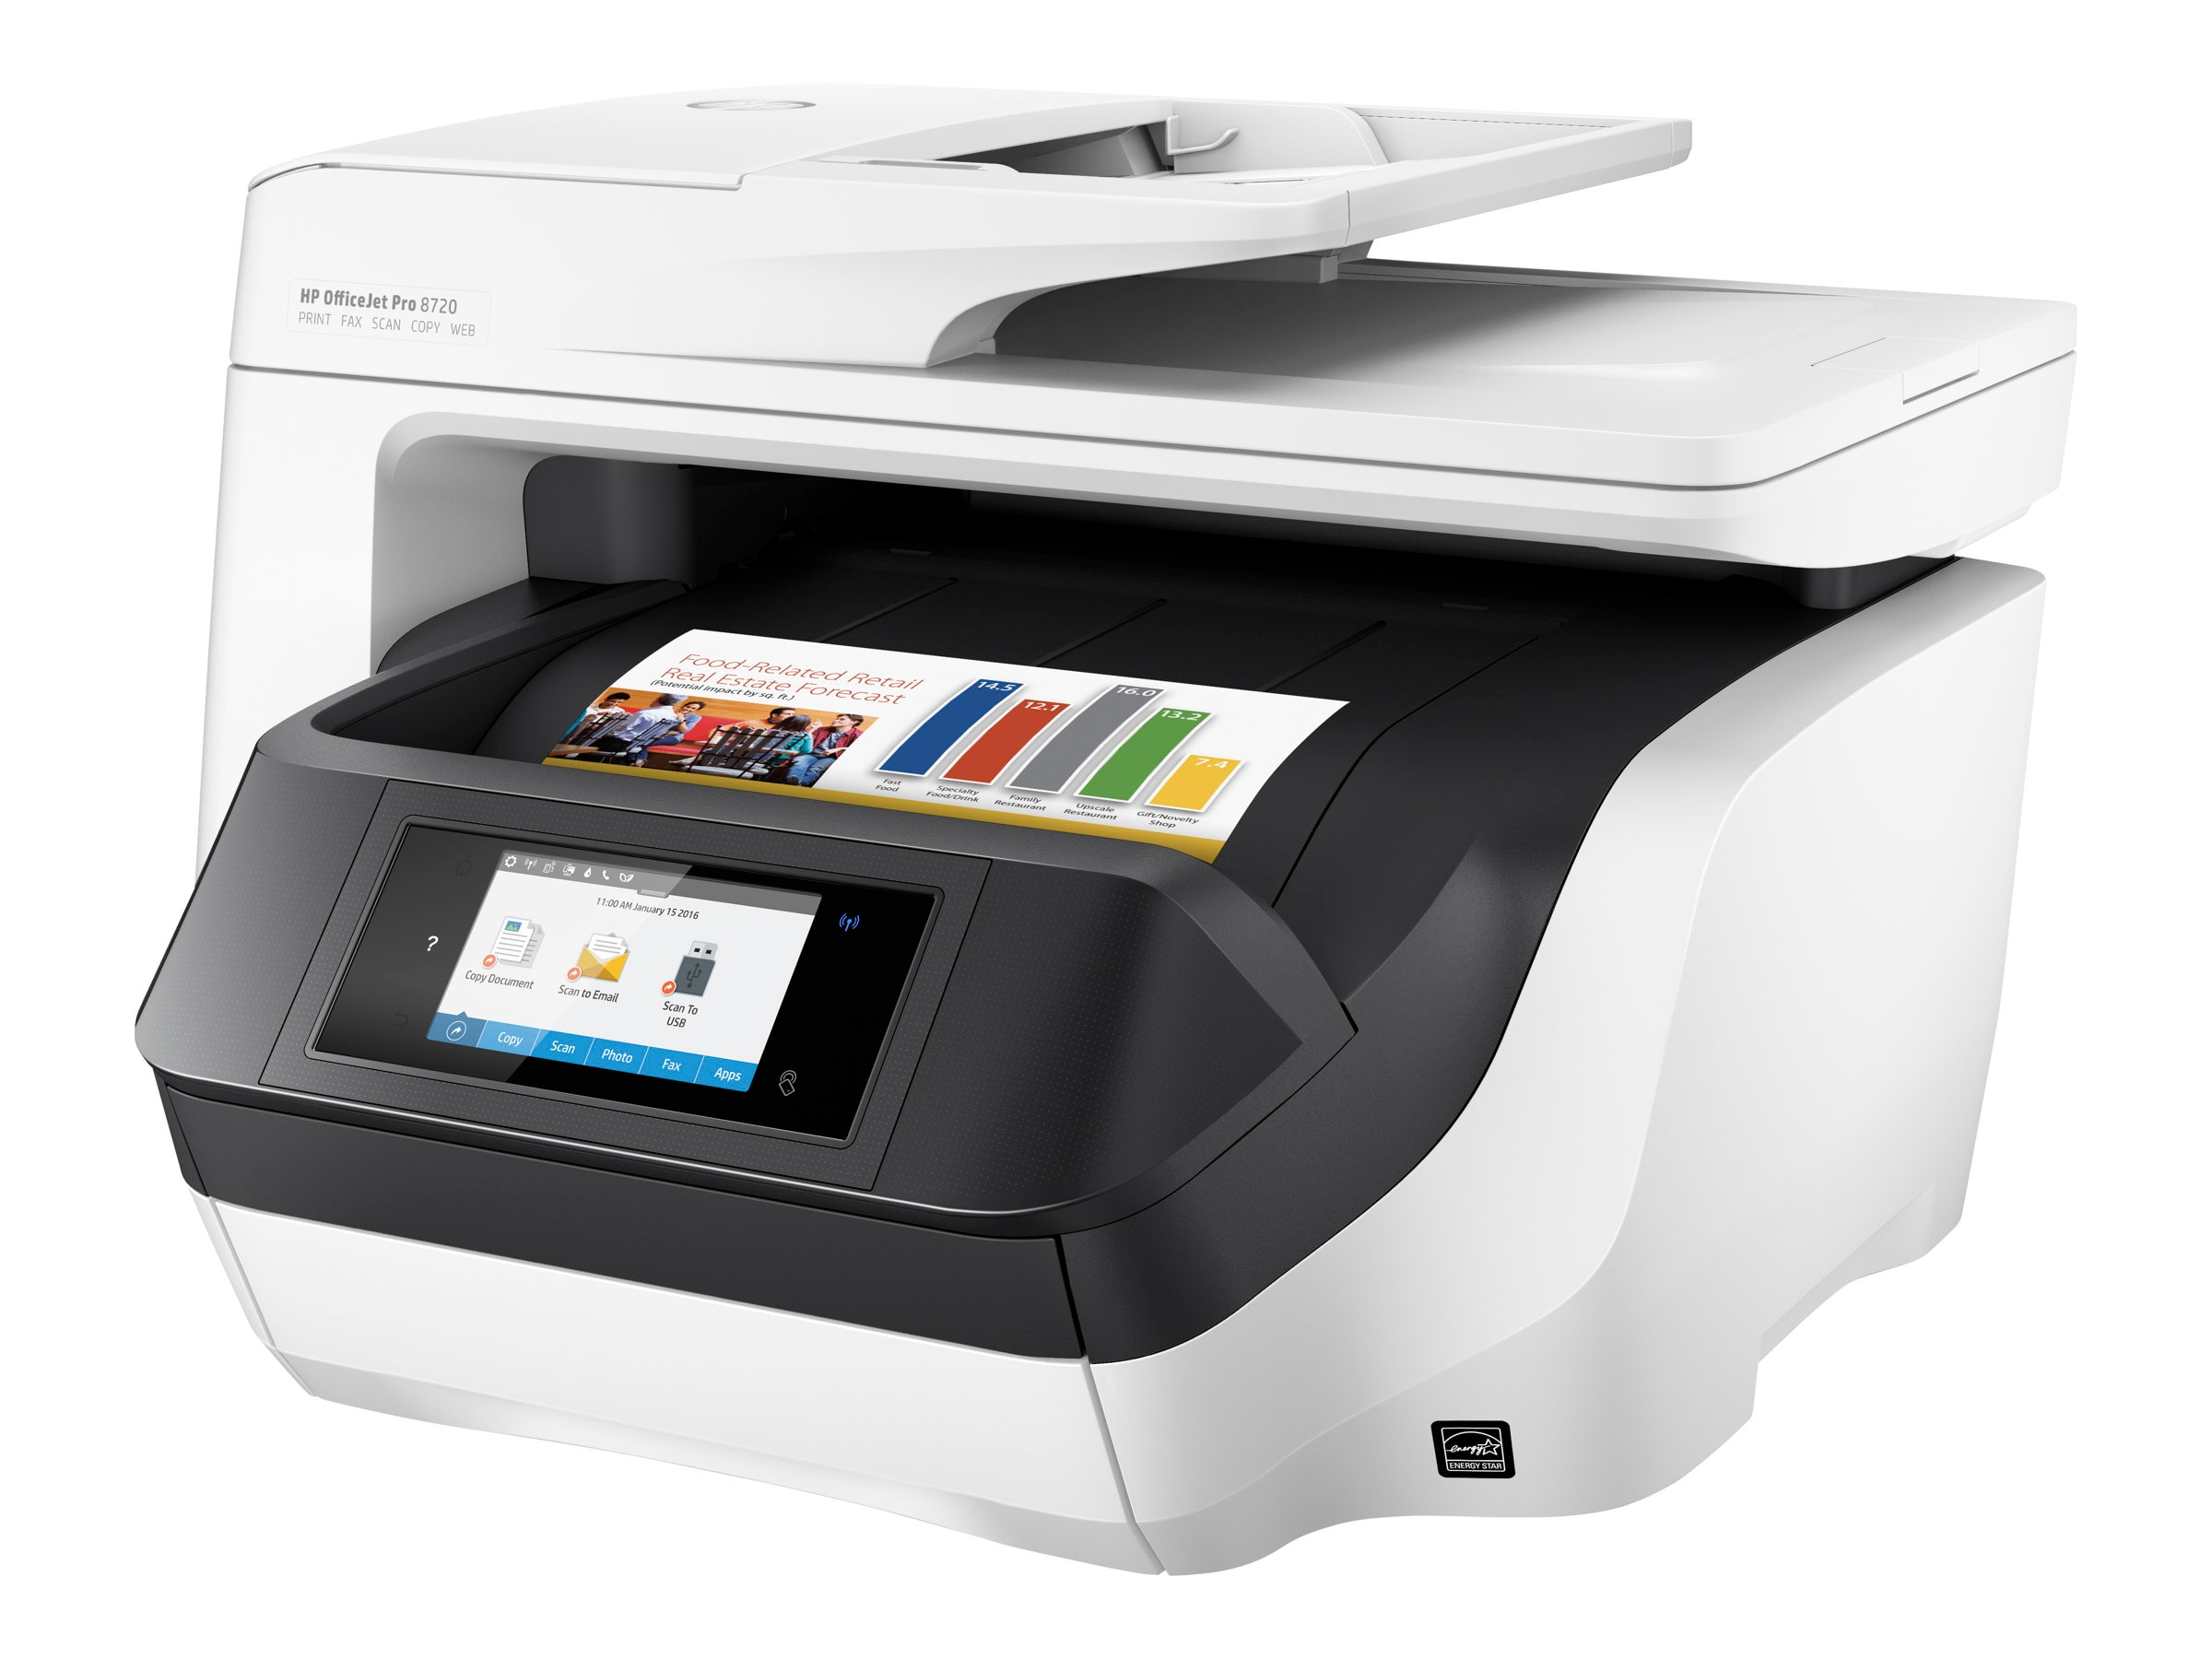 Open Box HP Officejet Pro 8720 All-In-One Printer